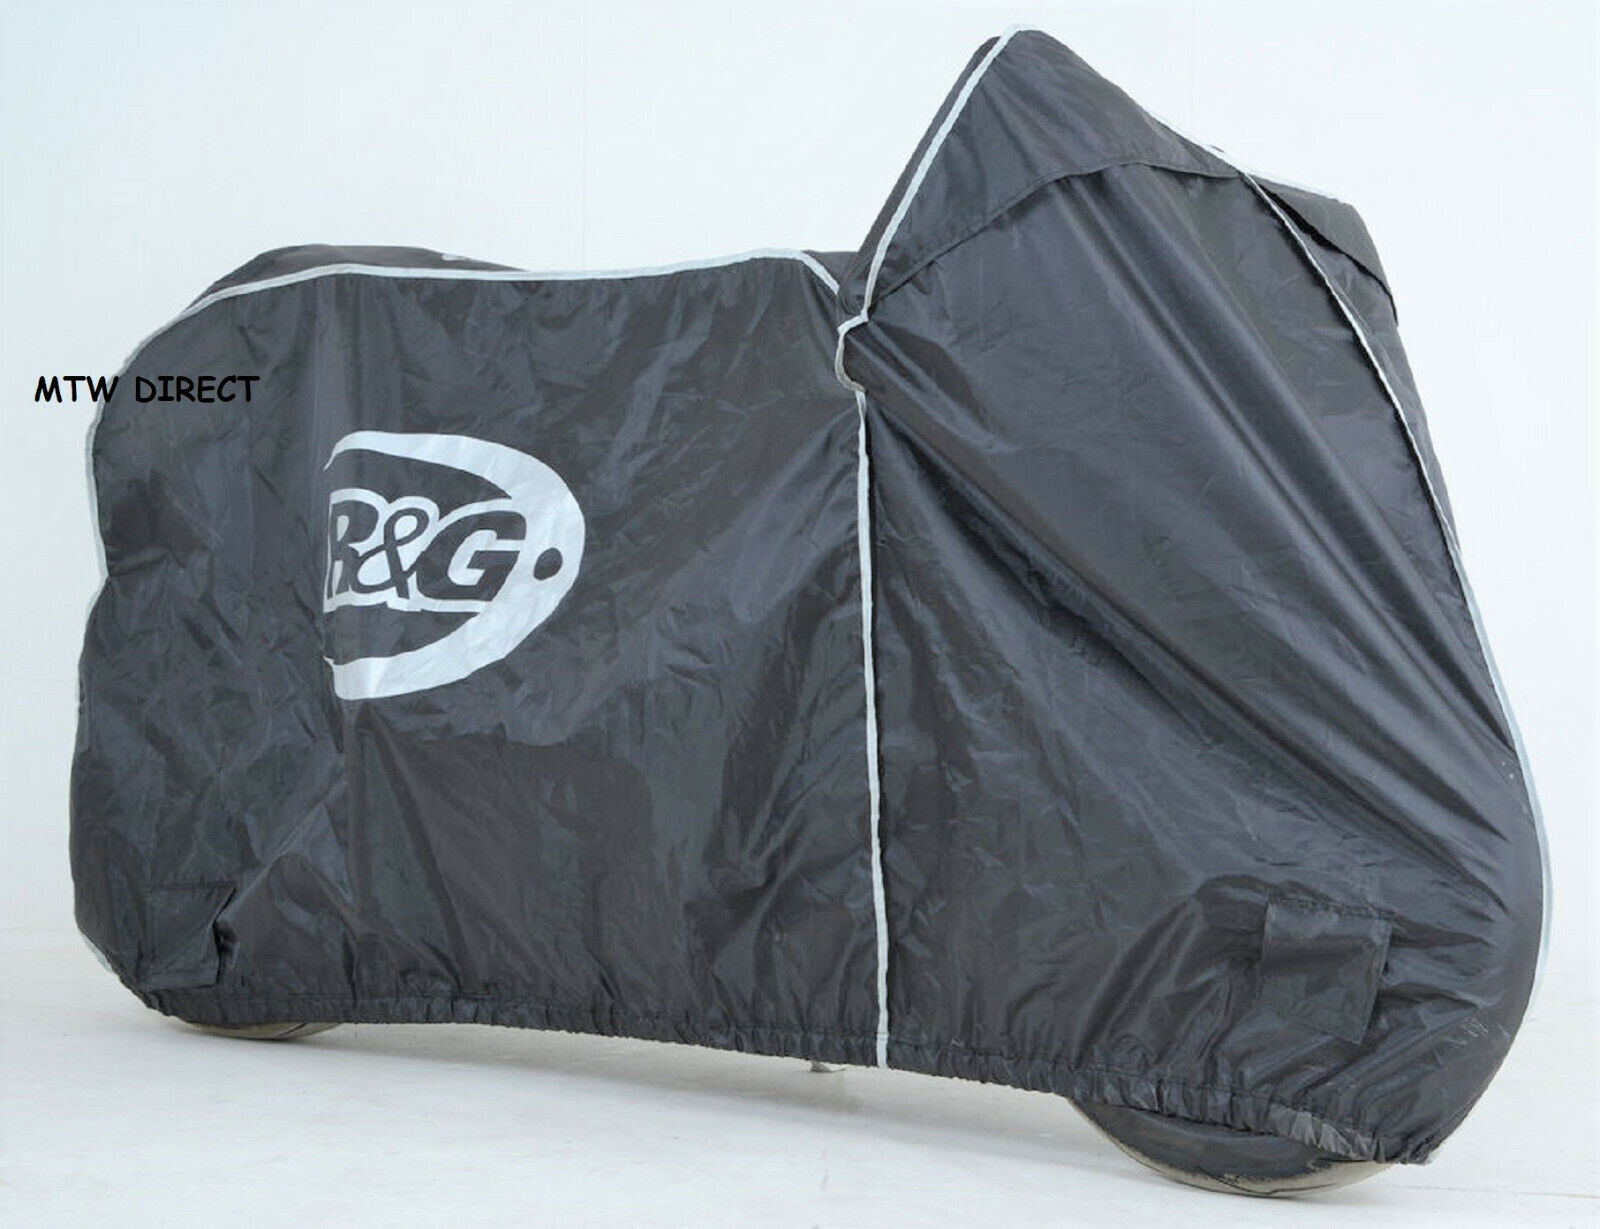 R&G RACING SUPERBIKE MOTORCYCLE OUTDOOR RAIN COVER NEWEST MODEL BC0001BK